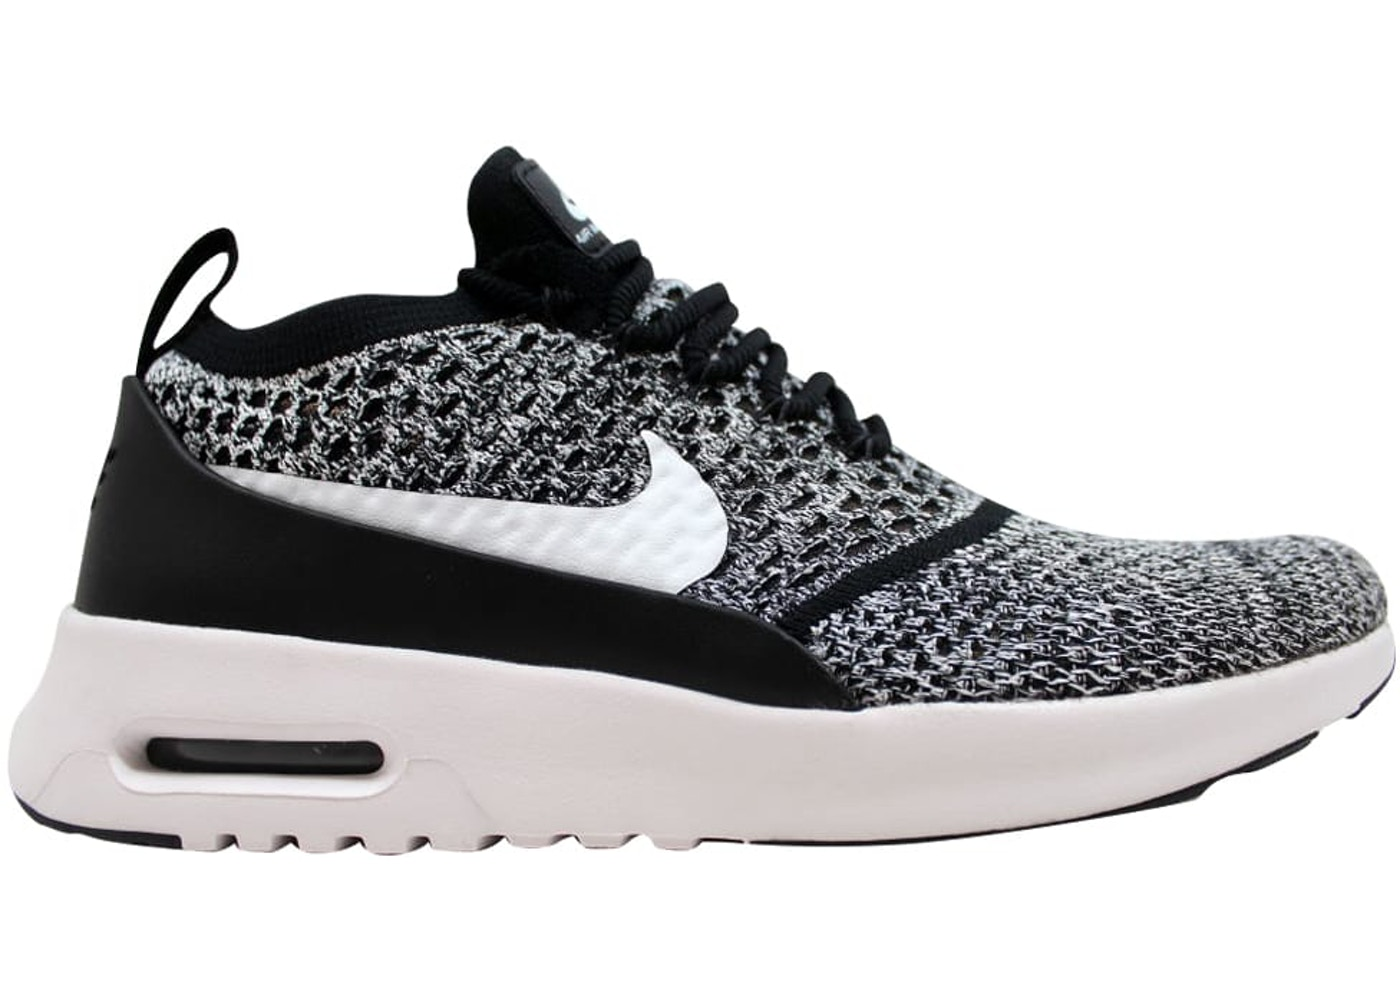 finest selection 9730c 848a1 Nike Air Max Thea Ultra Flyknit Black/White (W)